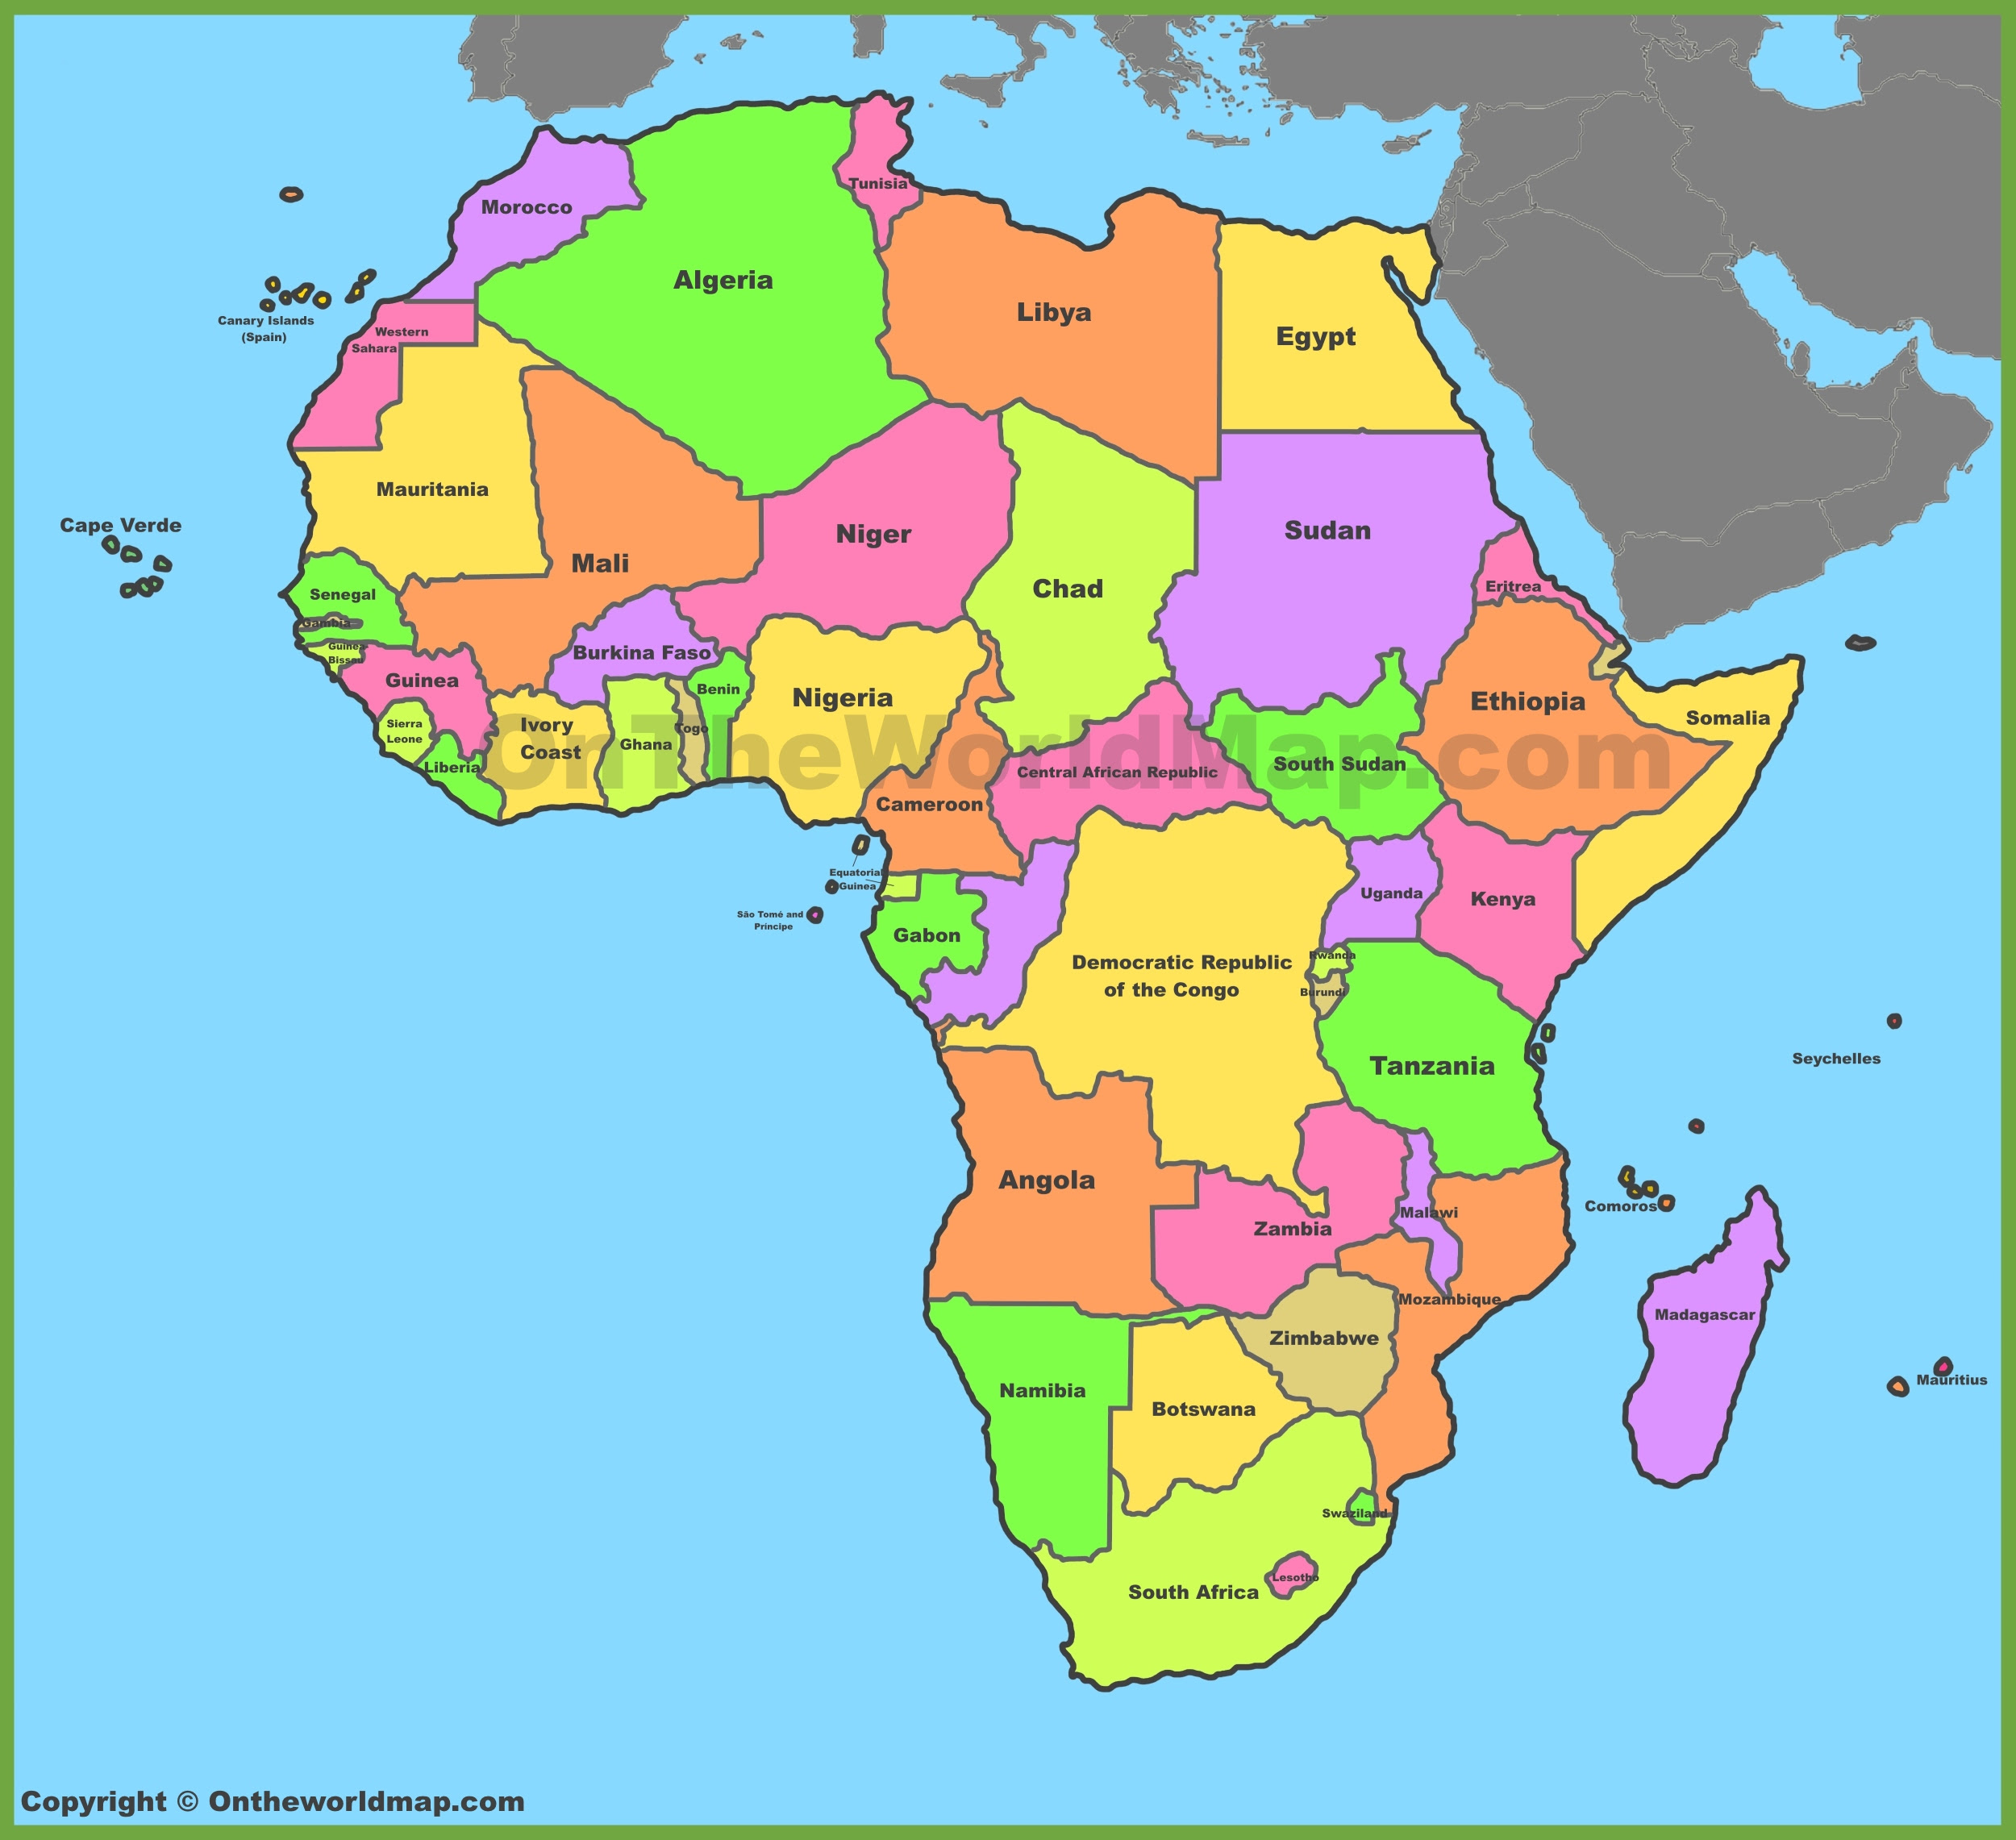 Maps Of Africa | Map Of Africa Labeled Map Of South Africa on labeled map of trinidad, labeled map of the u.s, labeled map of syria, labeled map of idaho, labeled map of missouri, labeled map of the himalayas, labeled map of mongolia, labeled map of nigeria, labeled map of puerto rico, labeled map of paraguay, labeled map of albania, labeled map of bodies of water, labeled map of iraq, labeled map of u.s.a, labeled map of belize, labeled map of nazi germany, labeled map of new caledonia, labeled map of western united states, labeled map of iran, labeled map of bolivia,